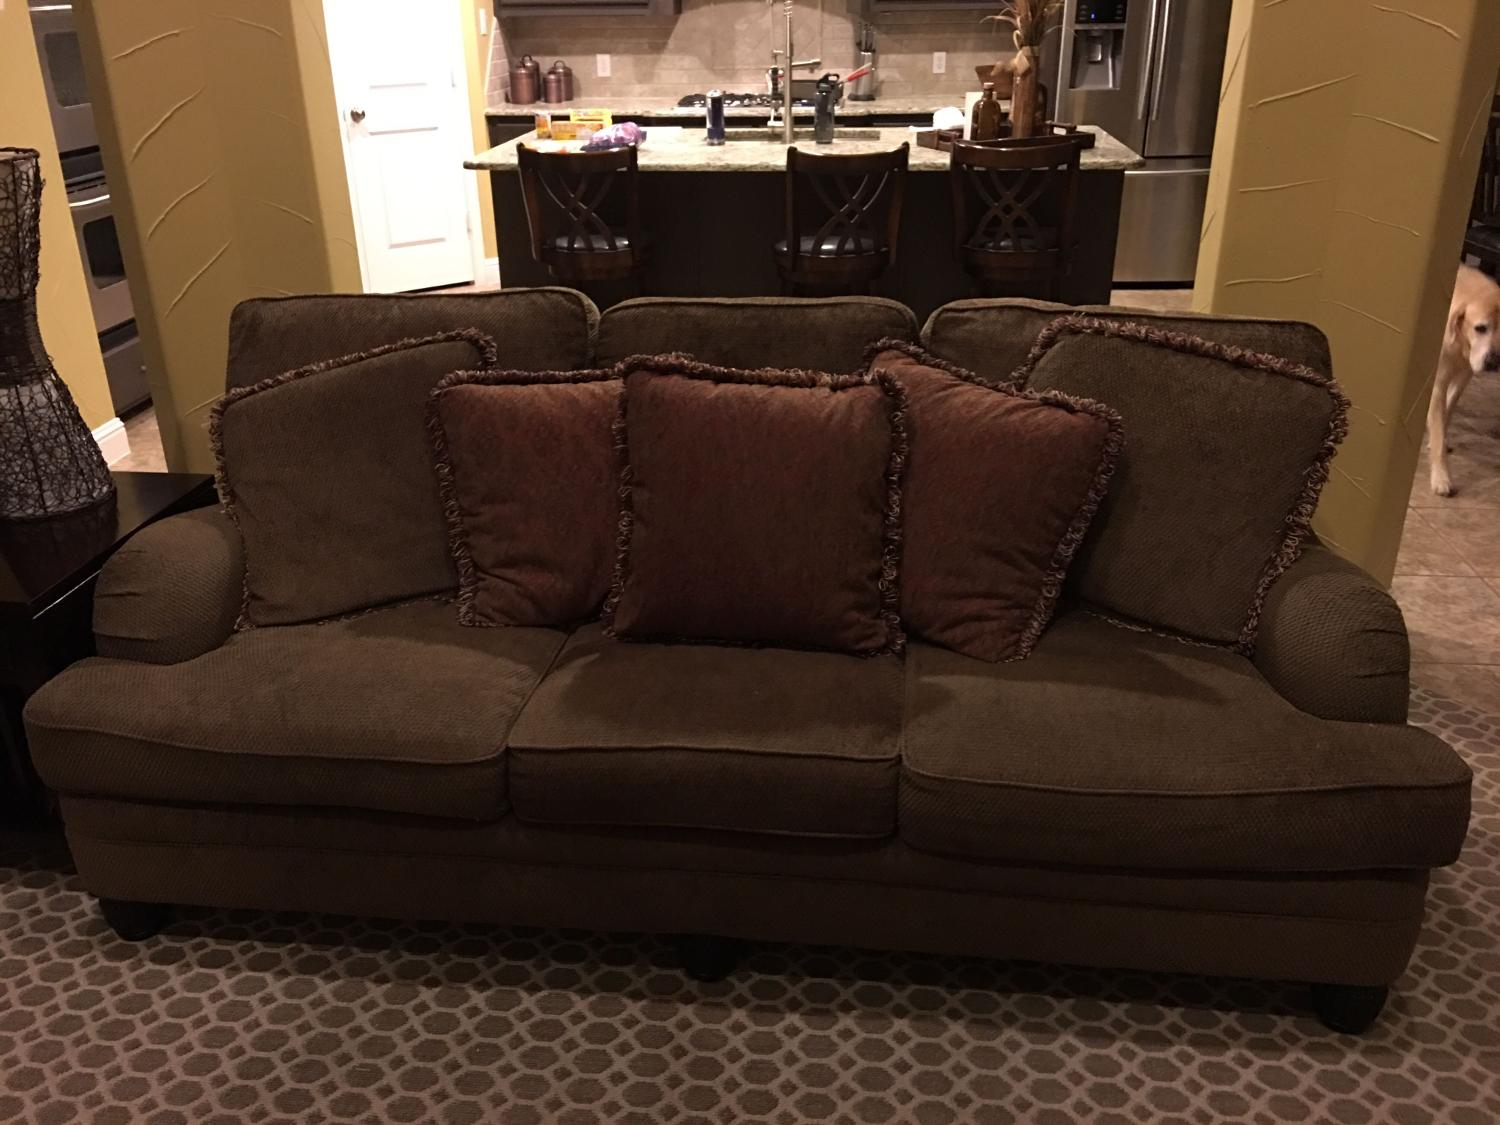 Find More Bernhardt Sofa From Haverty 39 S For Sale At Up To 90 Off Prosper Tx